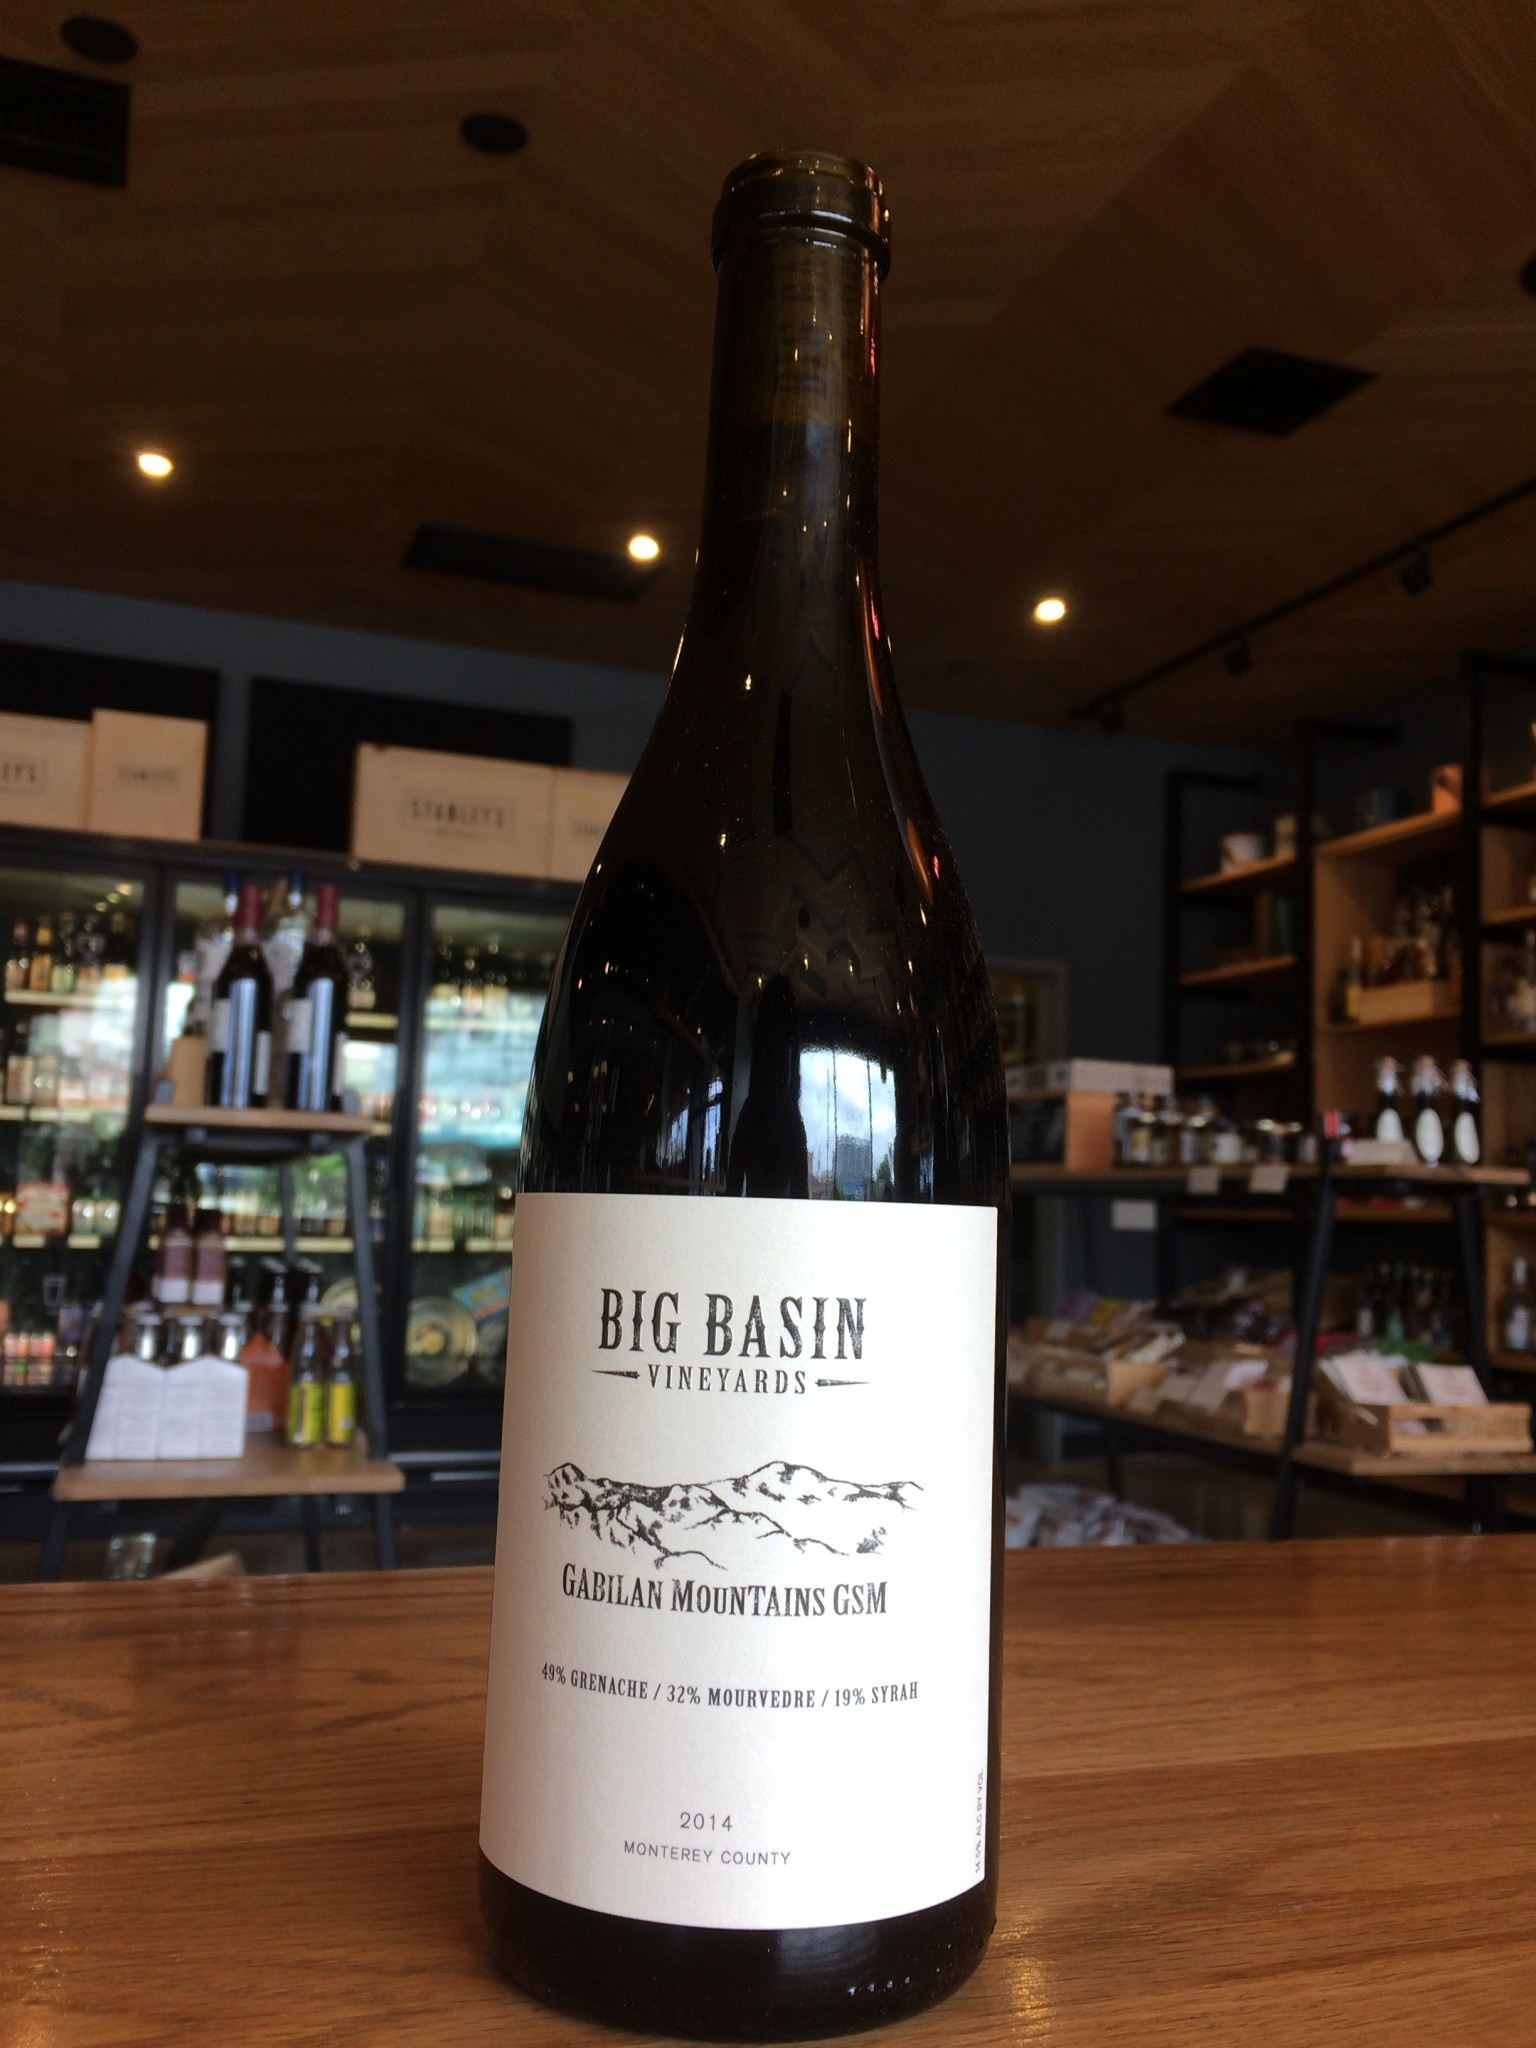 Big Basin Vineyards 2014 Big Basin Vineyards Gabilan Mountain GSM 750ml